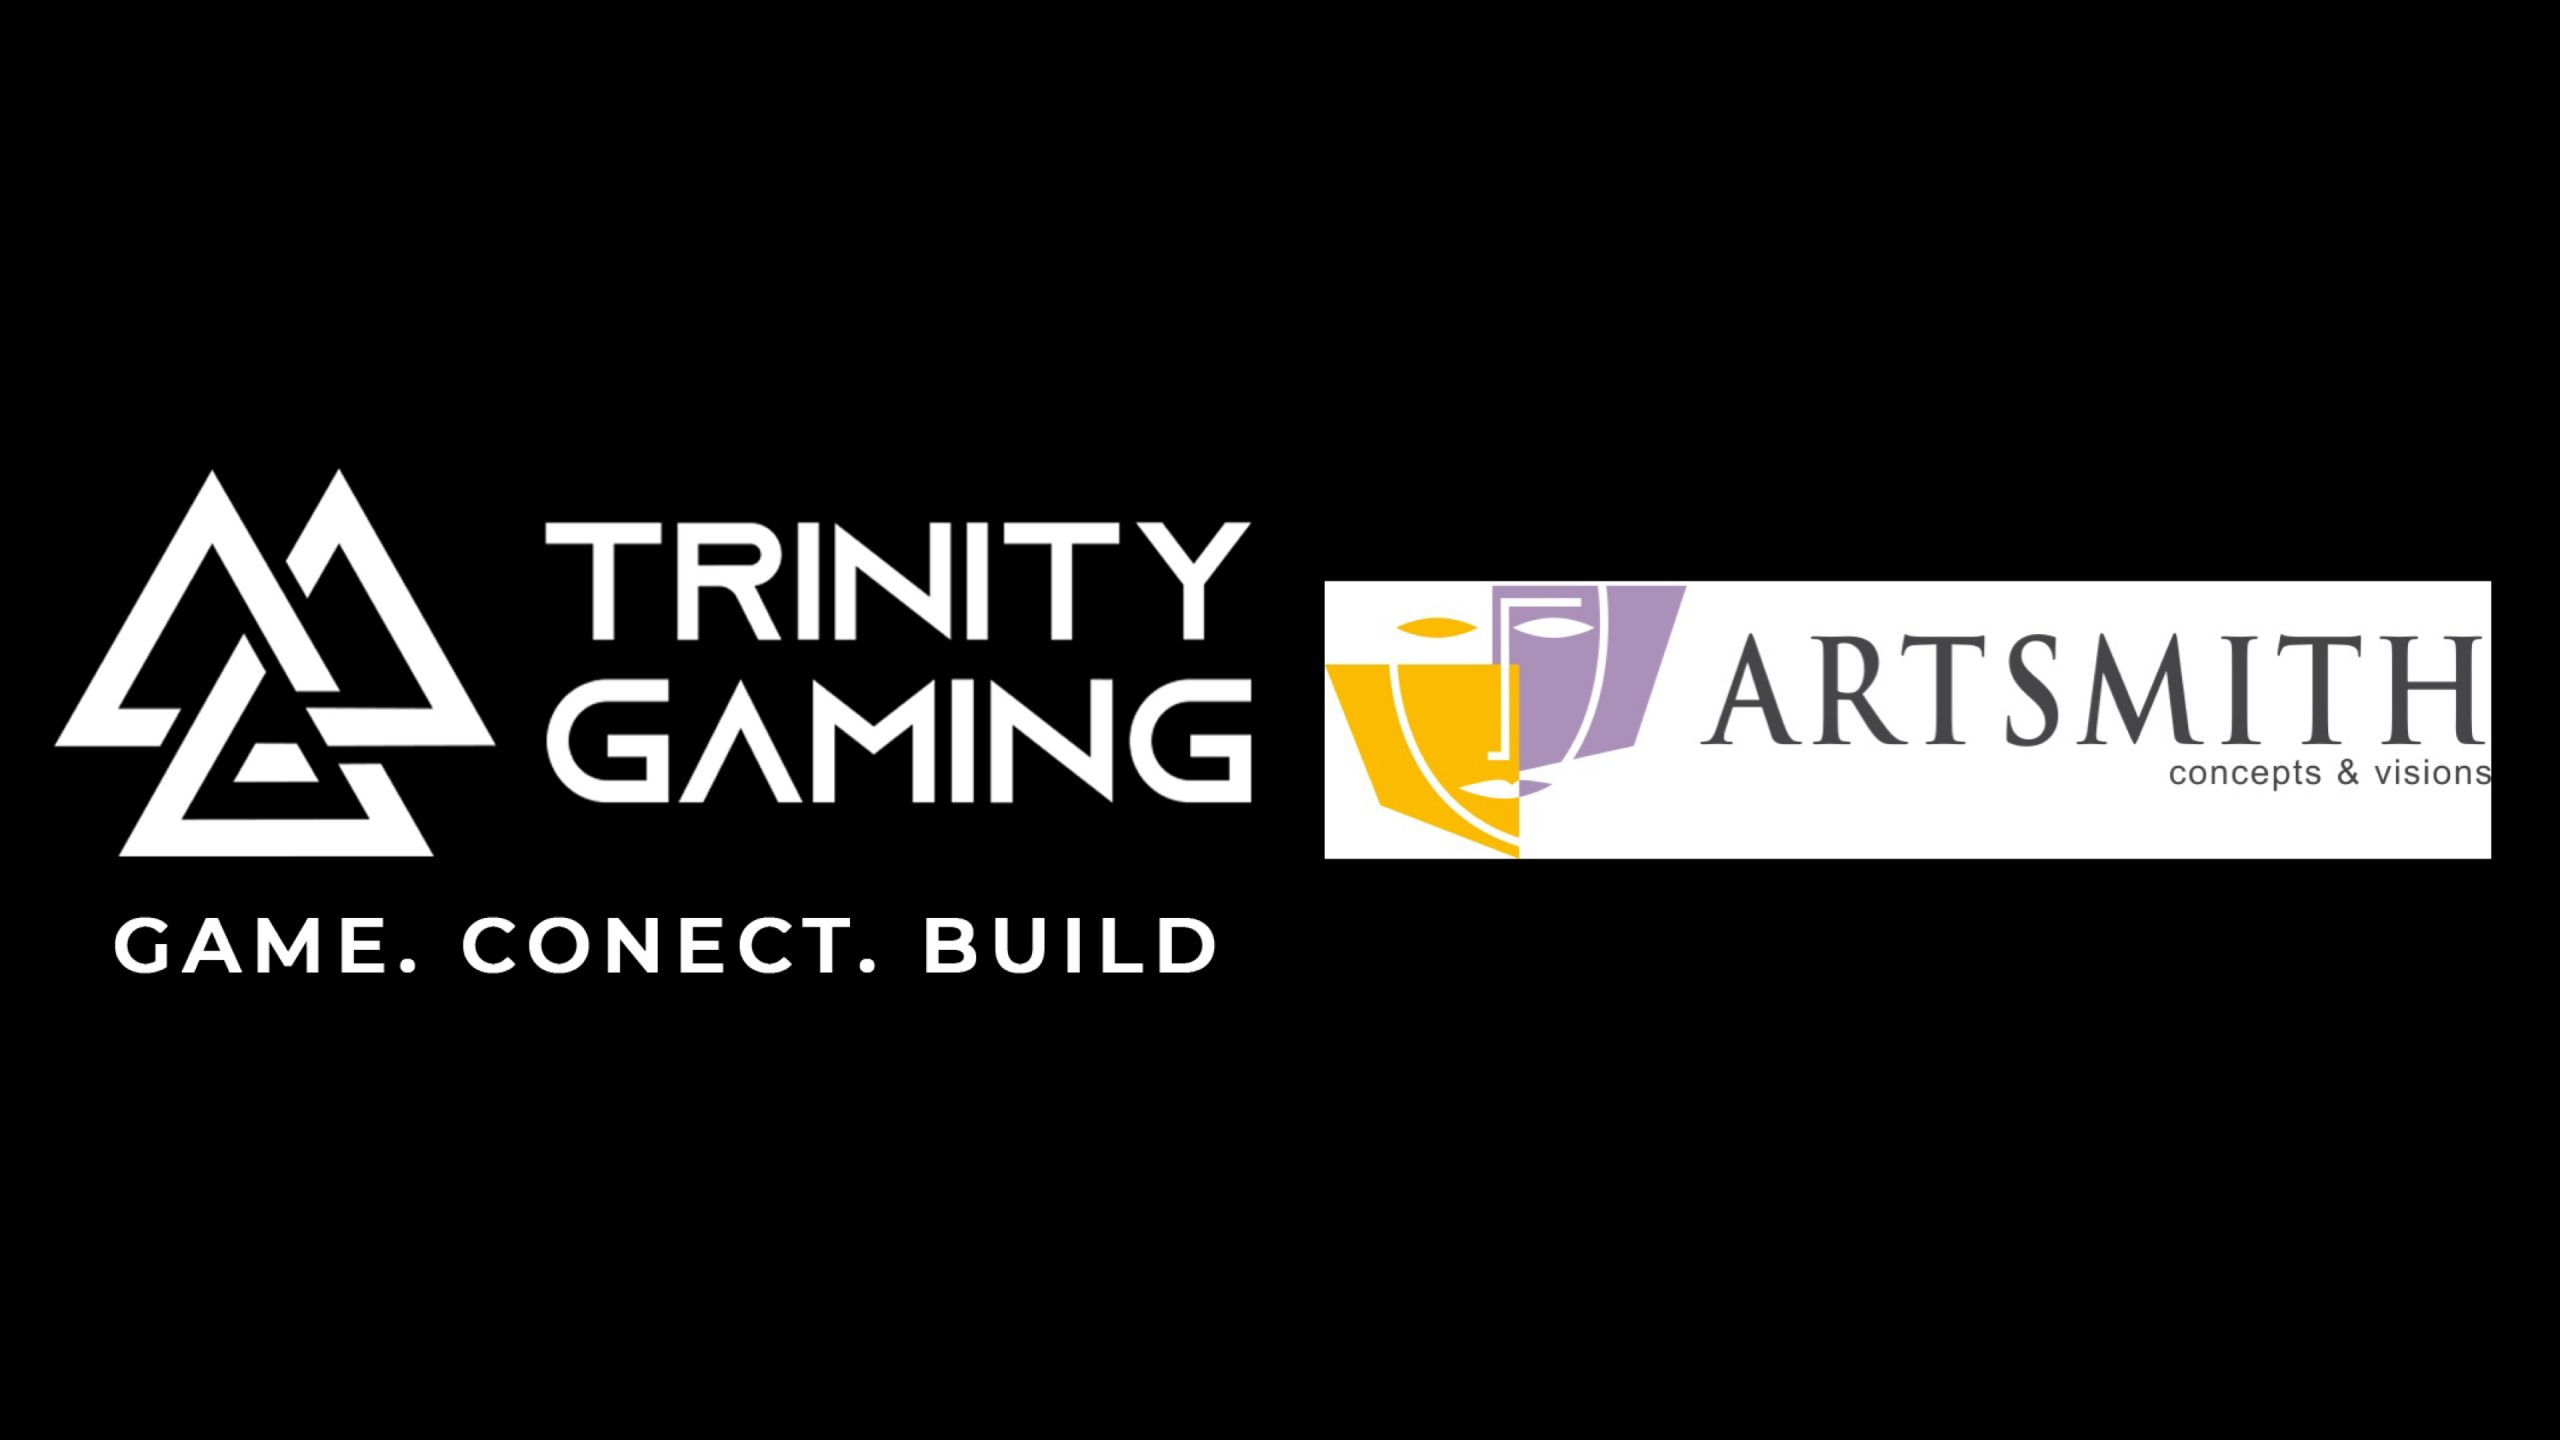 Trinity Gaming joins hands with Artsmith to create career awareness in gaming, esports ecosystem